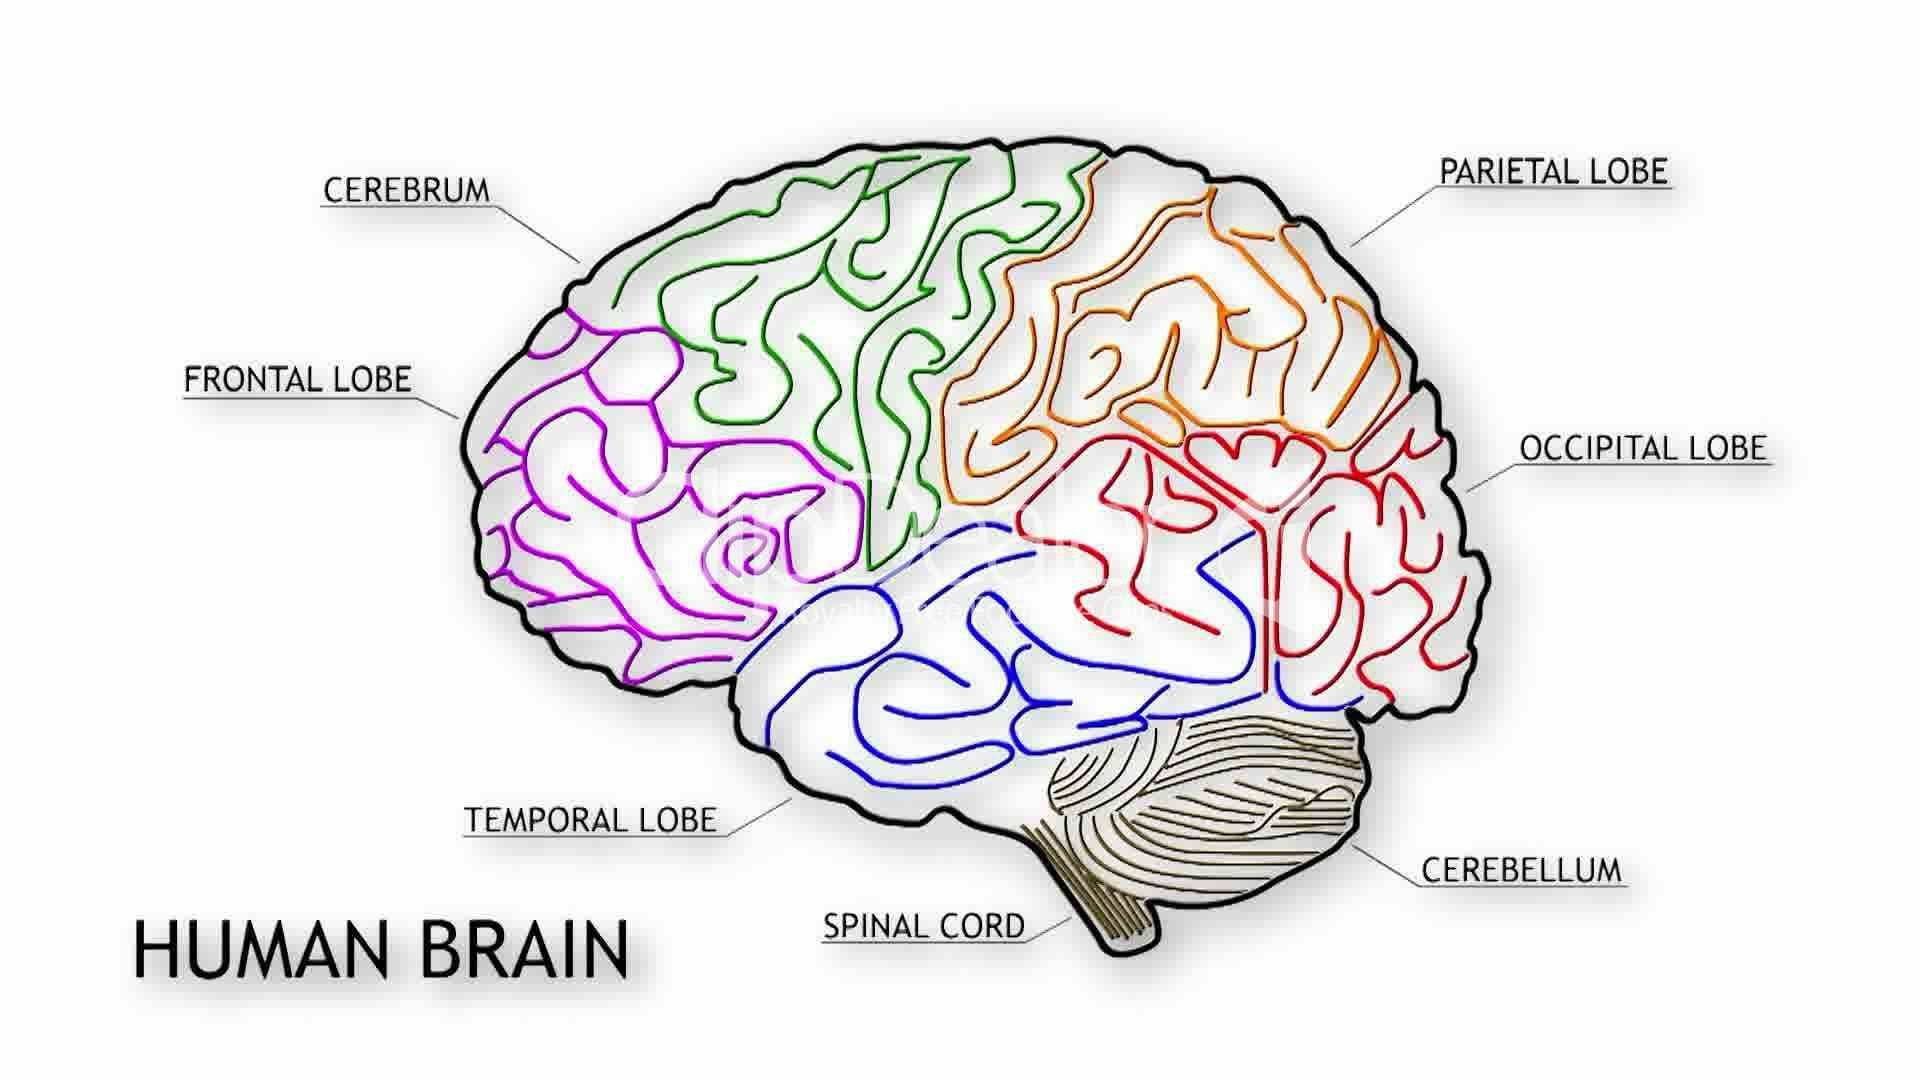 Simple diagram showing the lobes of the human brain the cerebellum simple diagram showing the lobes of the human brain the cerebellum and the brain stem spinal cord ccuart Choice Image